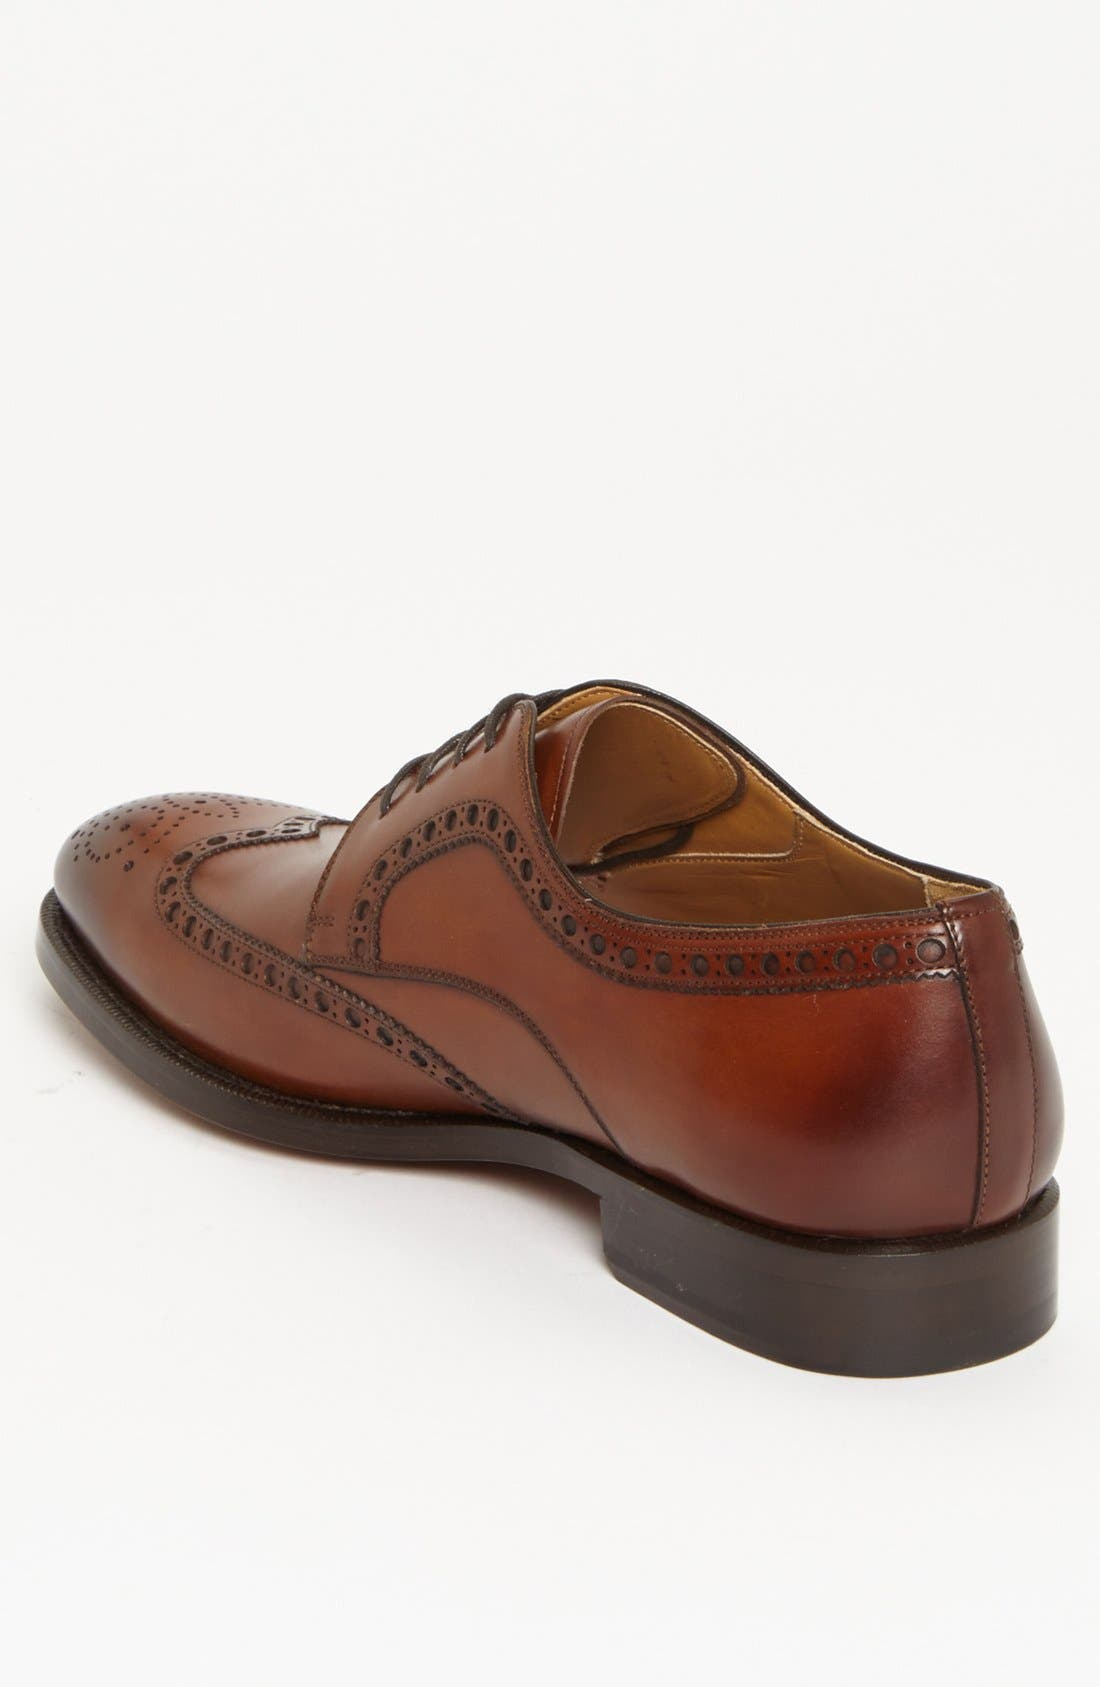 Alternate Image 2  - Magnanni 'Apolo' Wingtip